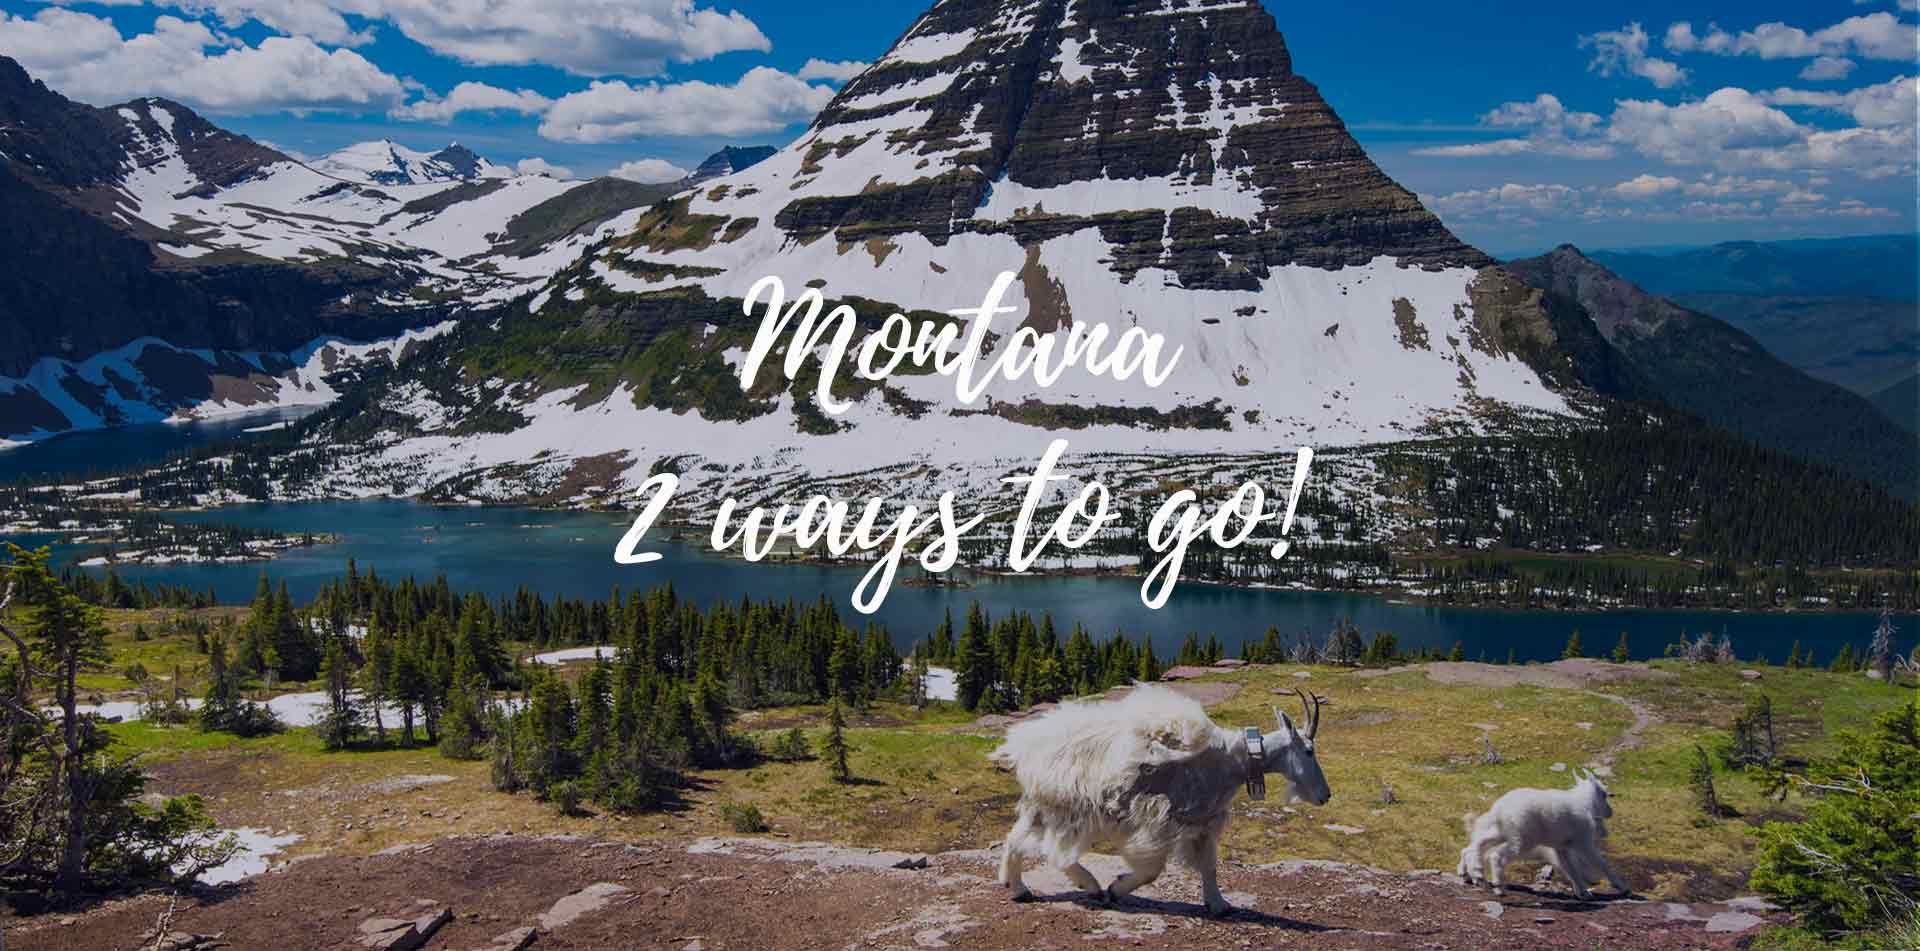 North America United States Montana Glacier National Park Hidden Lake scenic mountain goats - luxury vacation destinations